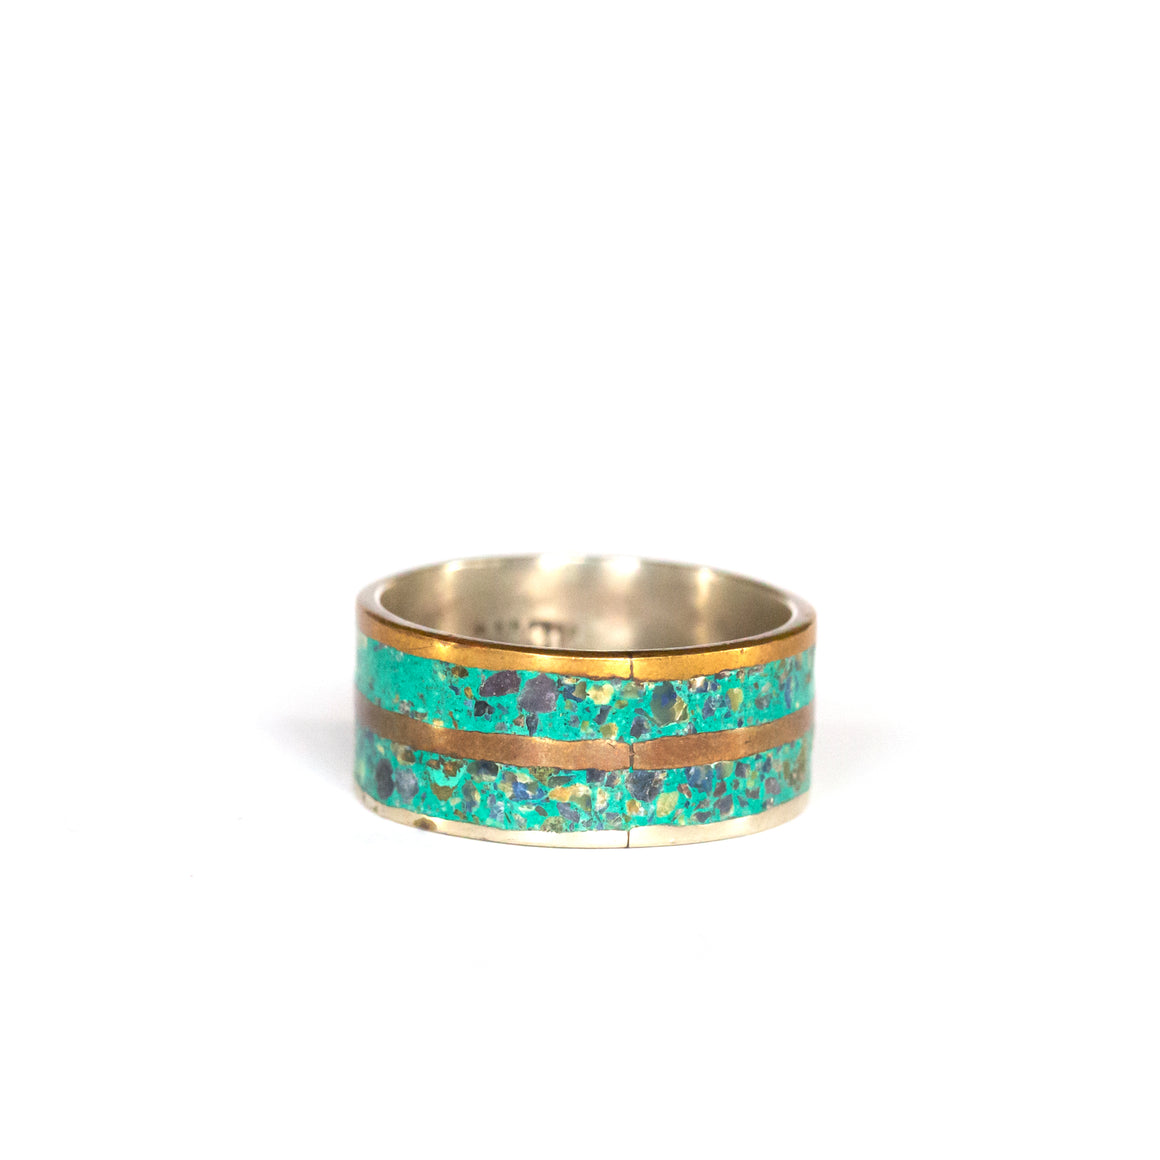 VINTAGE JEWELRY | GOLD-TONE STERLING TURQUOISE RING (SIZE 9)